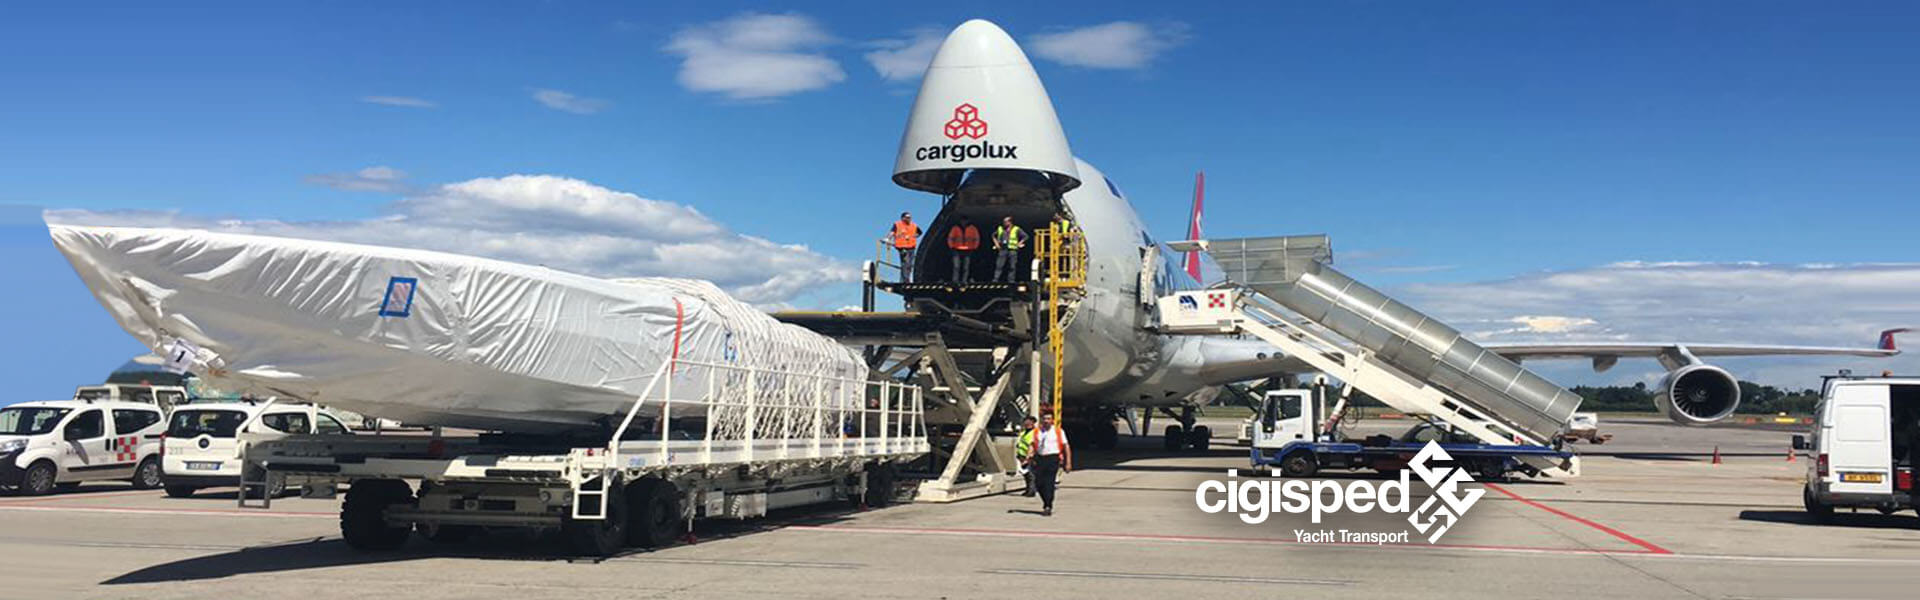 Air freight - Yacht transport by air and air freight container. Manage customs clearance and cross trade